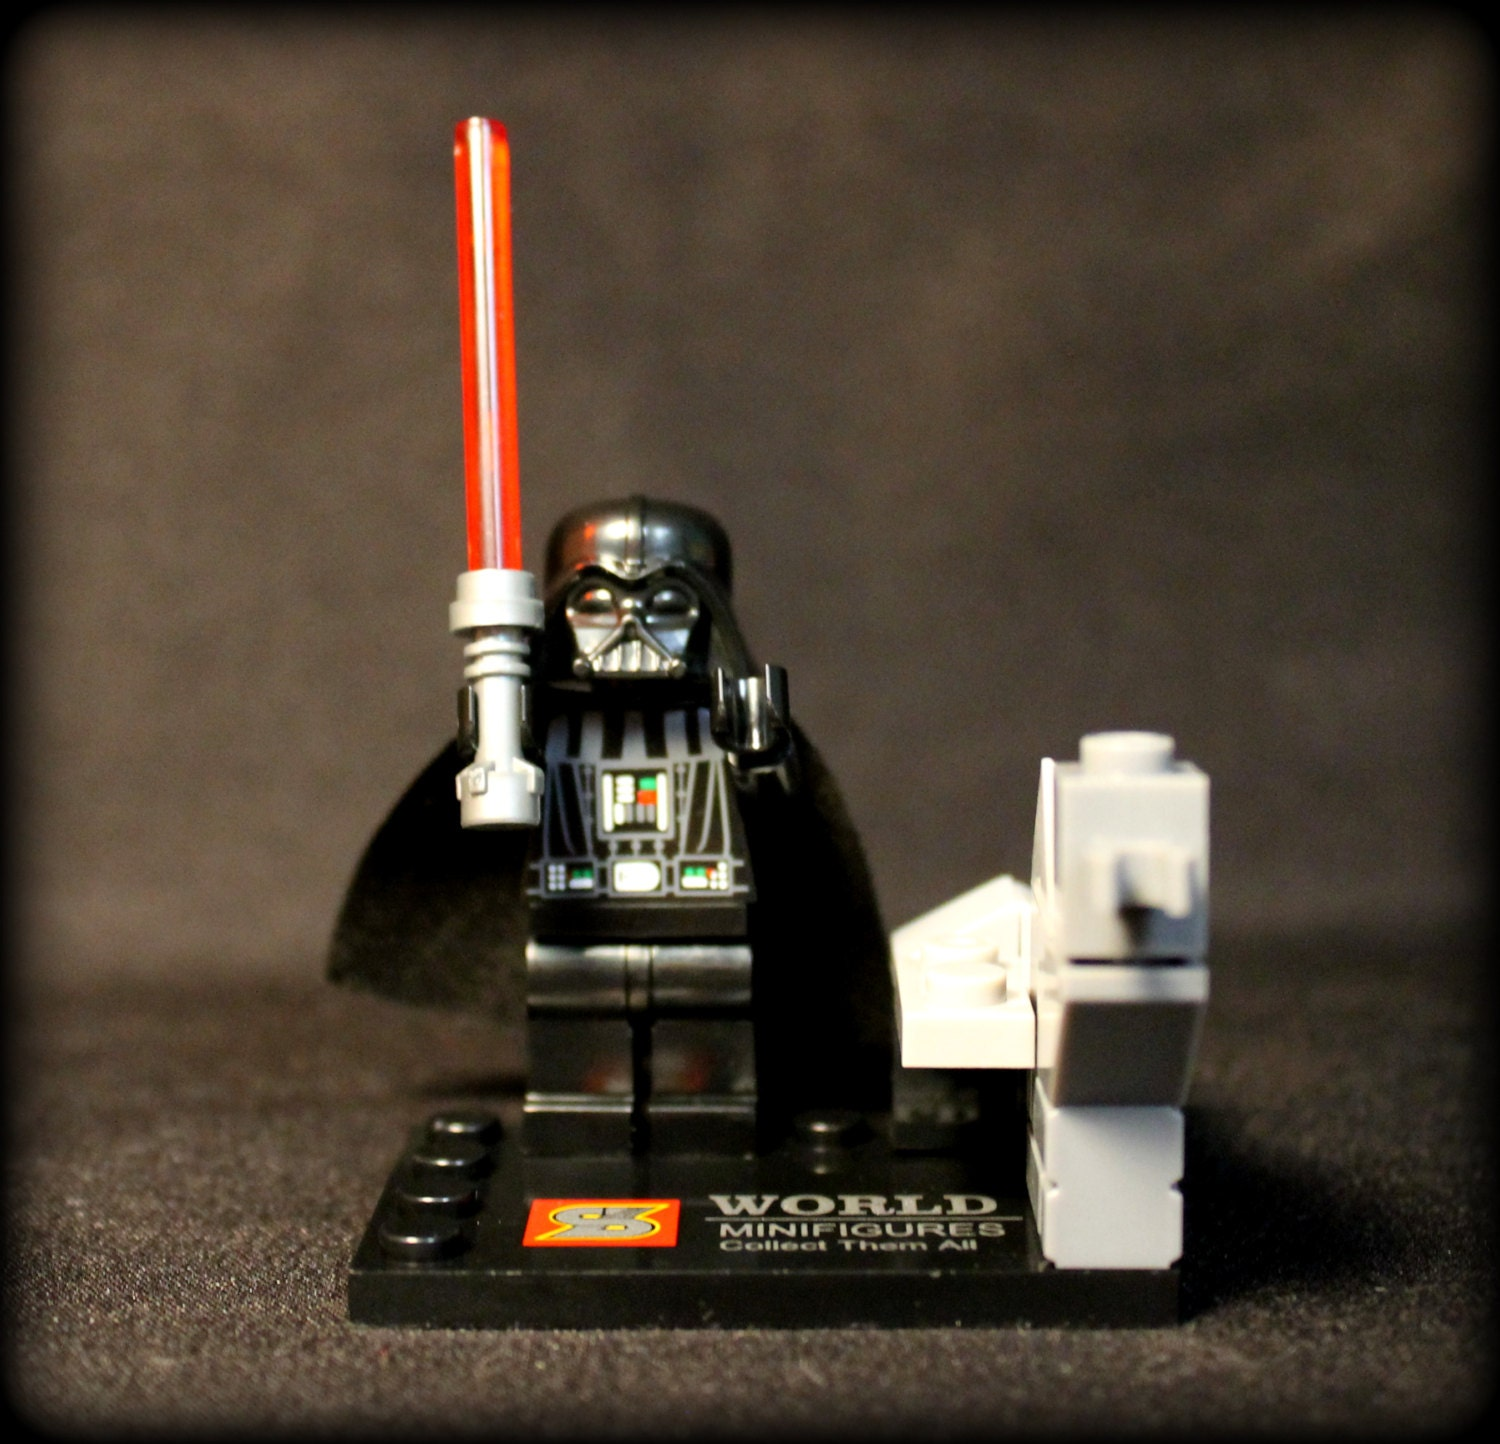 Darth Vader from Star Wars Custom Minifigure. Lego Compatible.